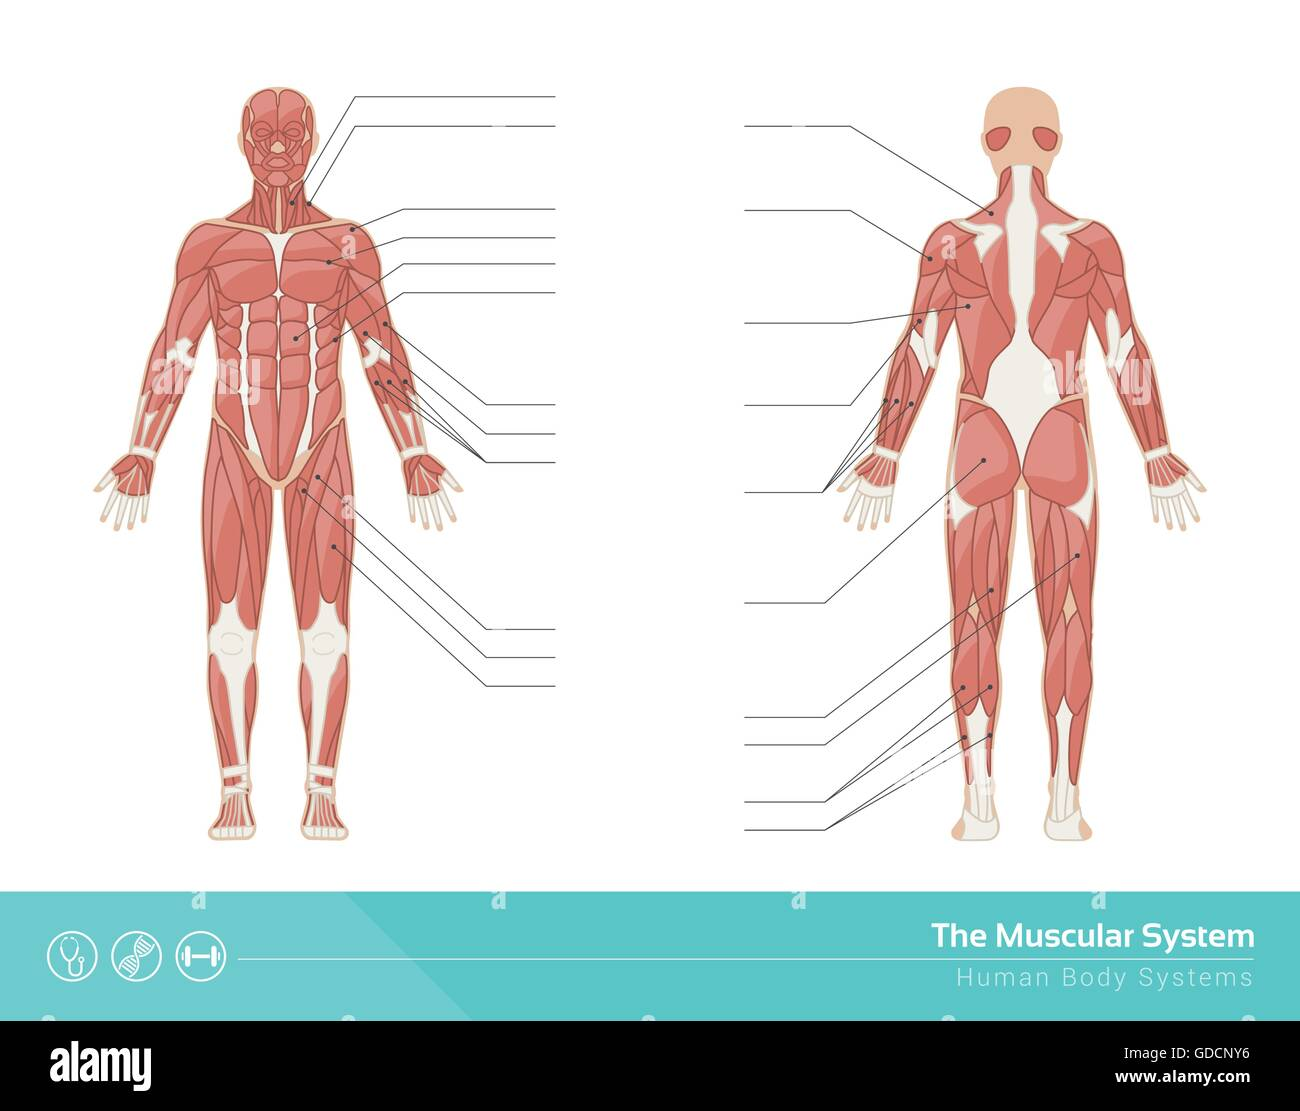 Muscular System Stock Photos Muscular System Stock Images Alamy